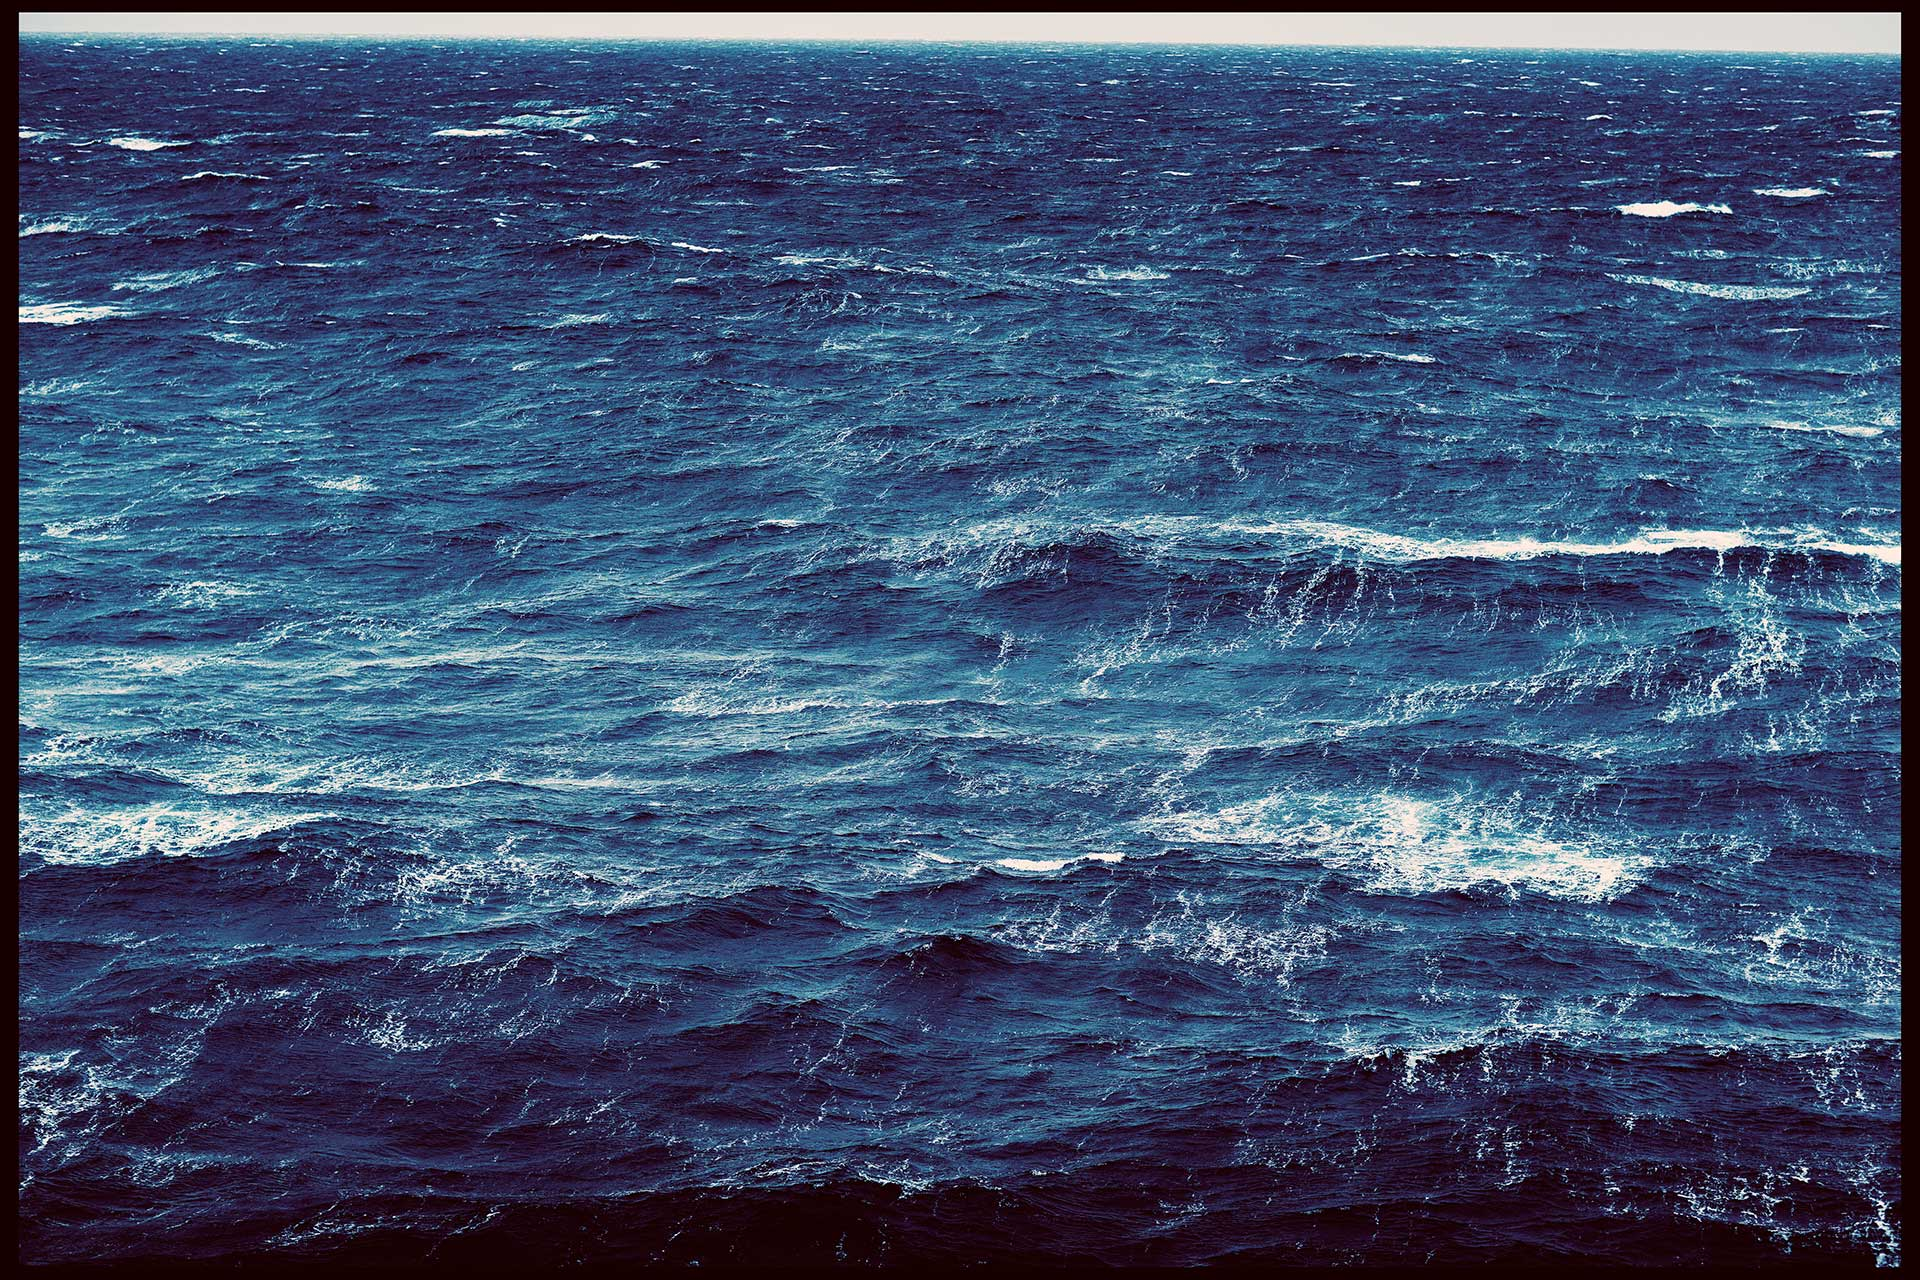 RDC_waves_2012-01a